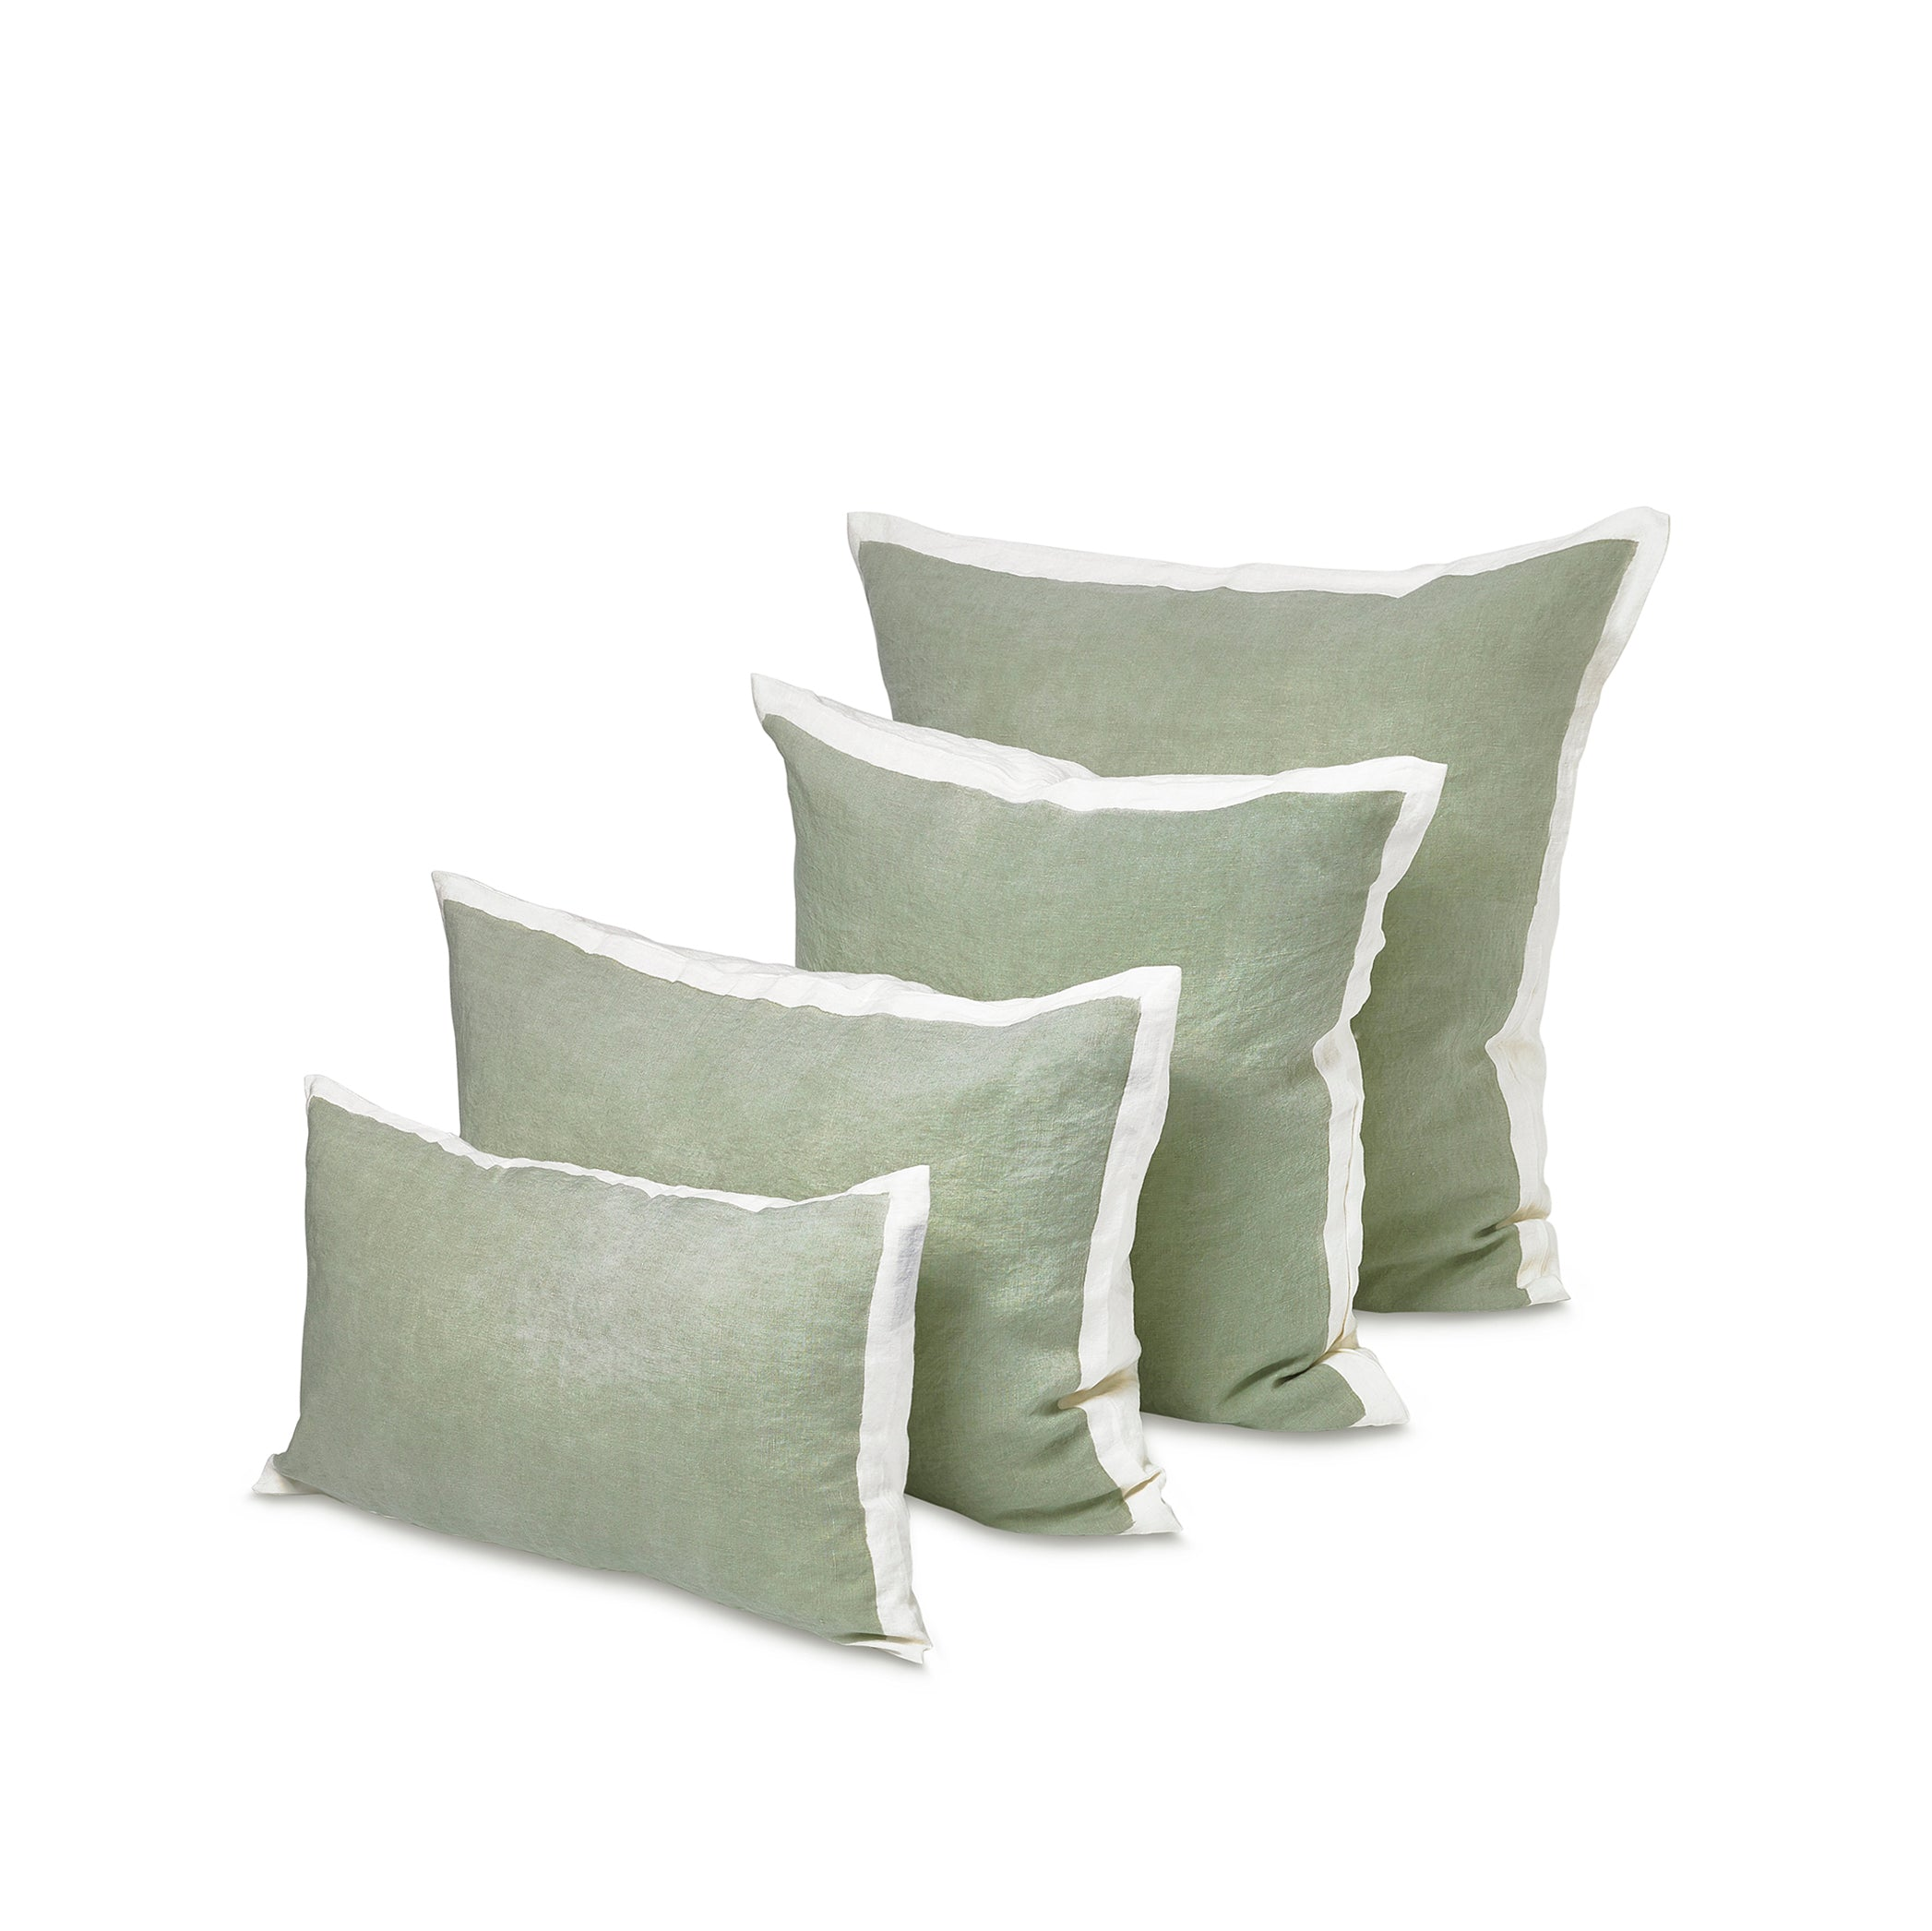 Hand Painted Linen Cushion in Pale Green, 60cm x 60cm